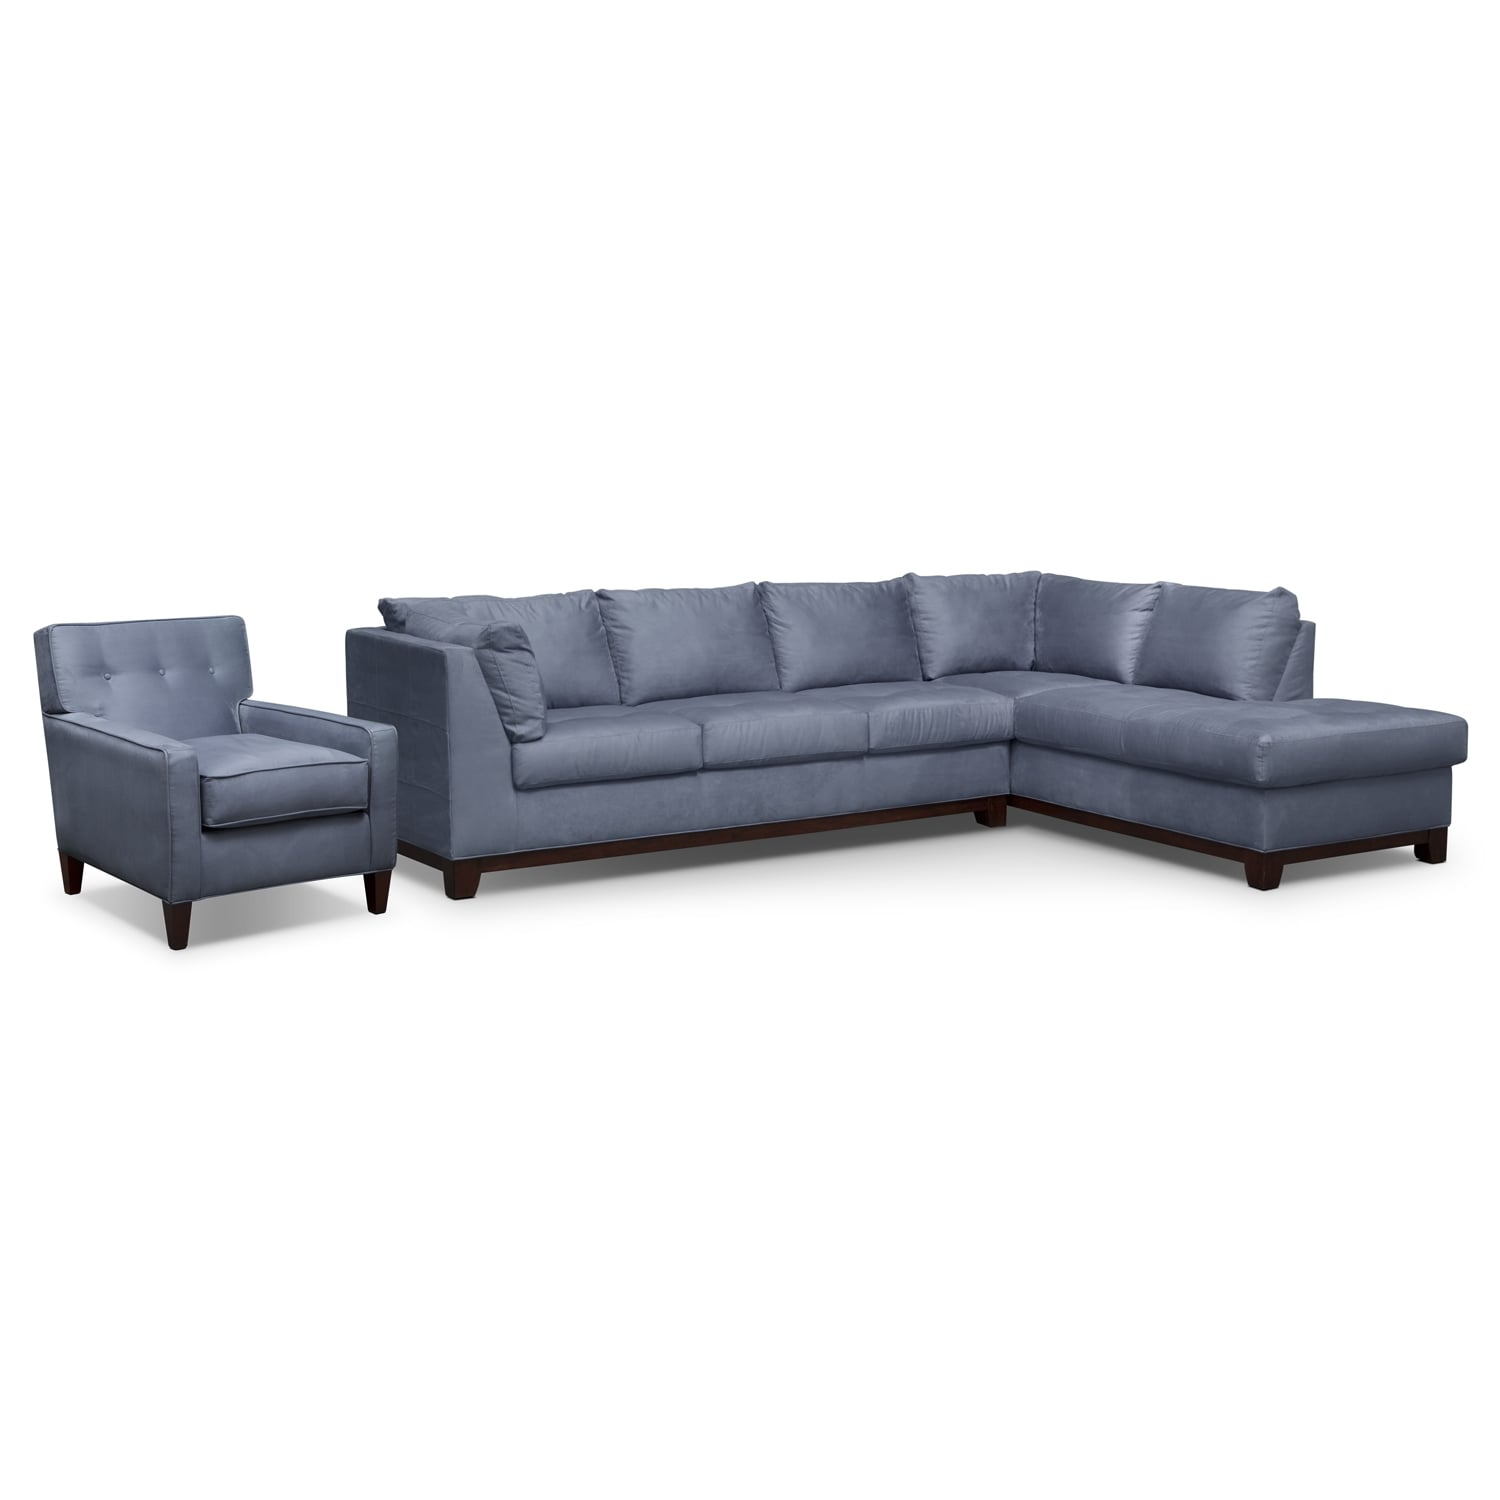 Soho 2-Piece Sectional with Right-Facing Chaise and Chair - Steel  sc 1 st  American Signature Furniture : american signature sectional - Sectionals, Sofas & Couches